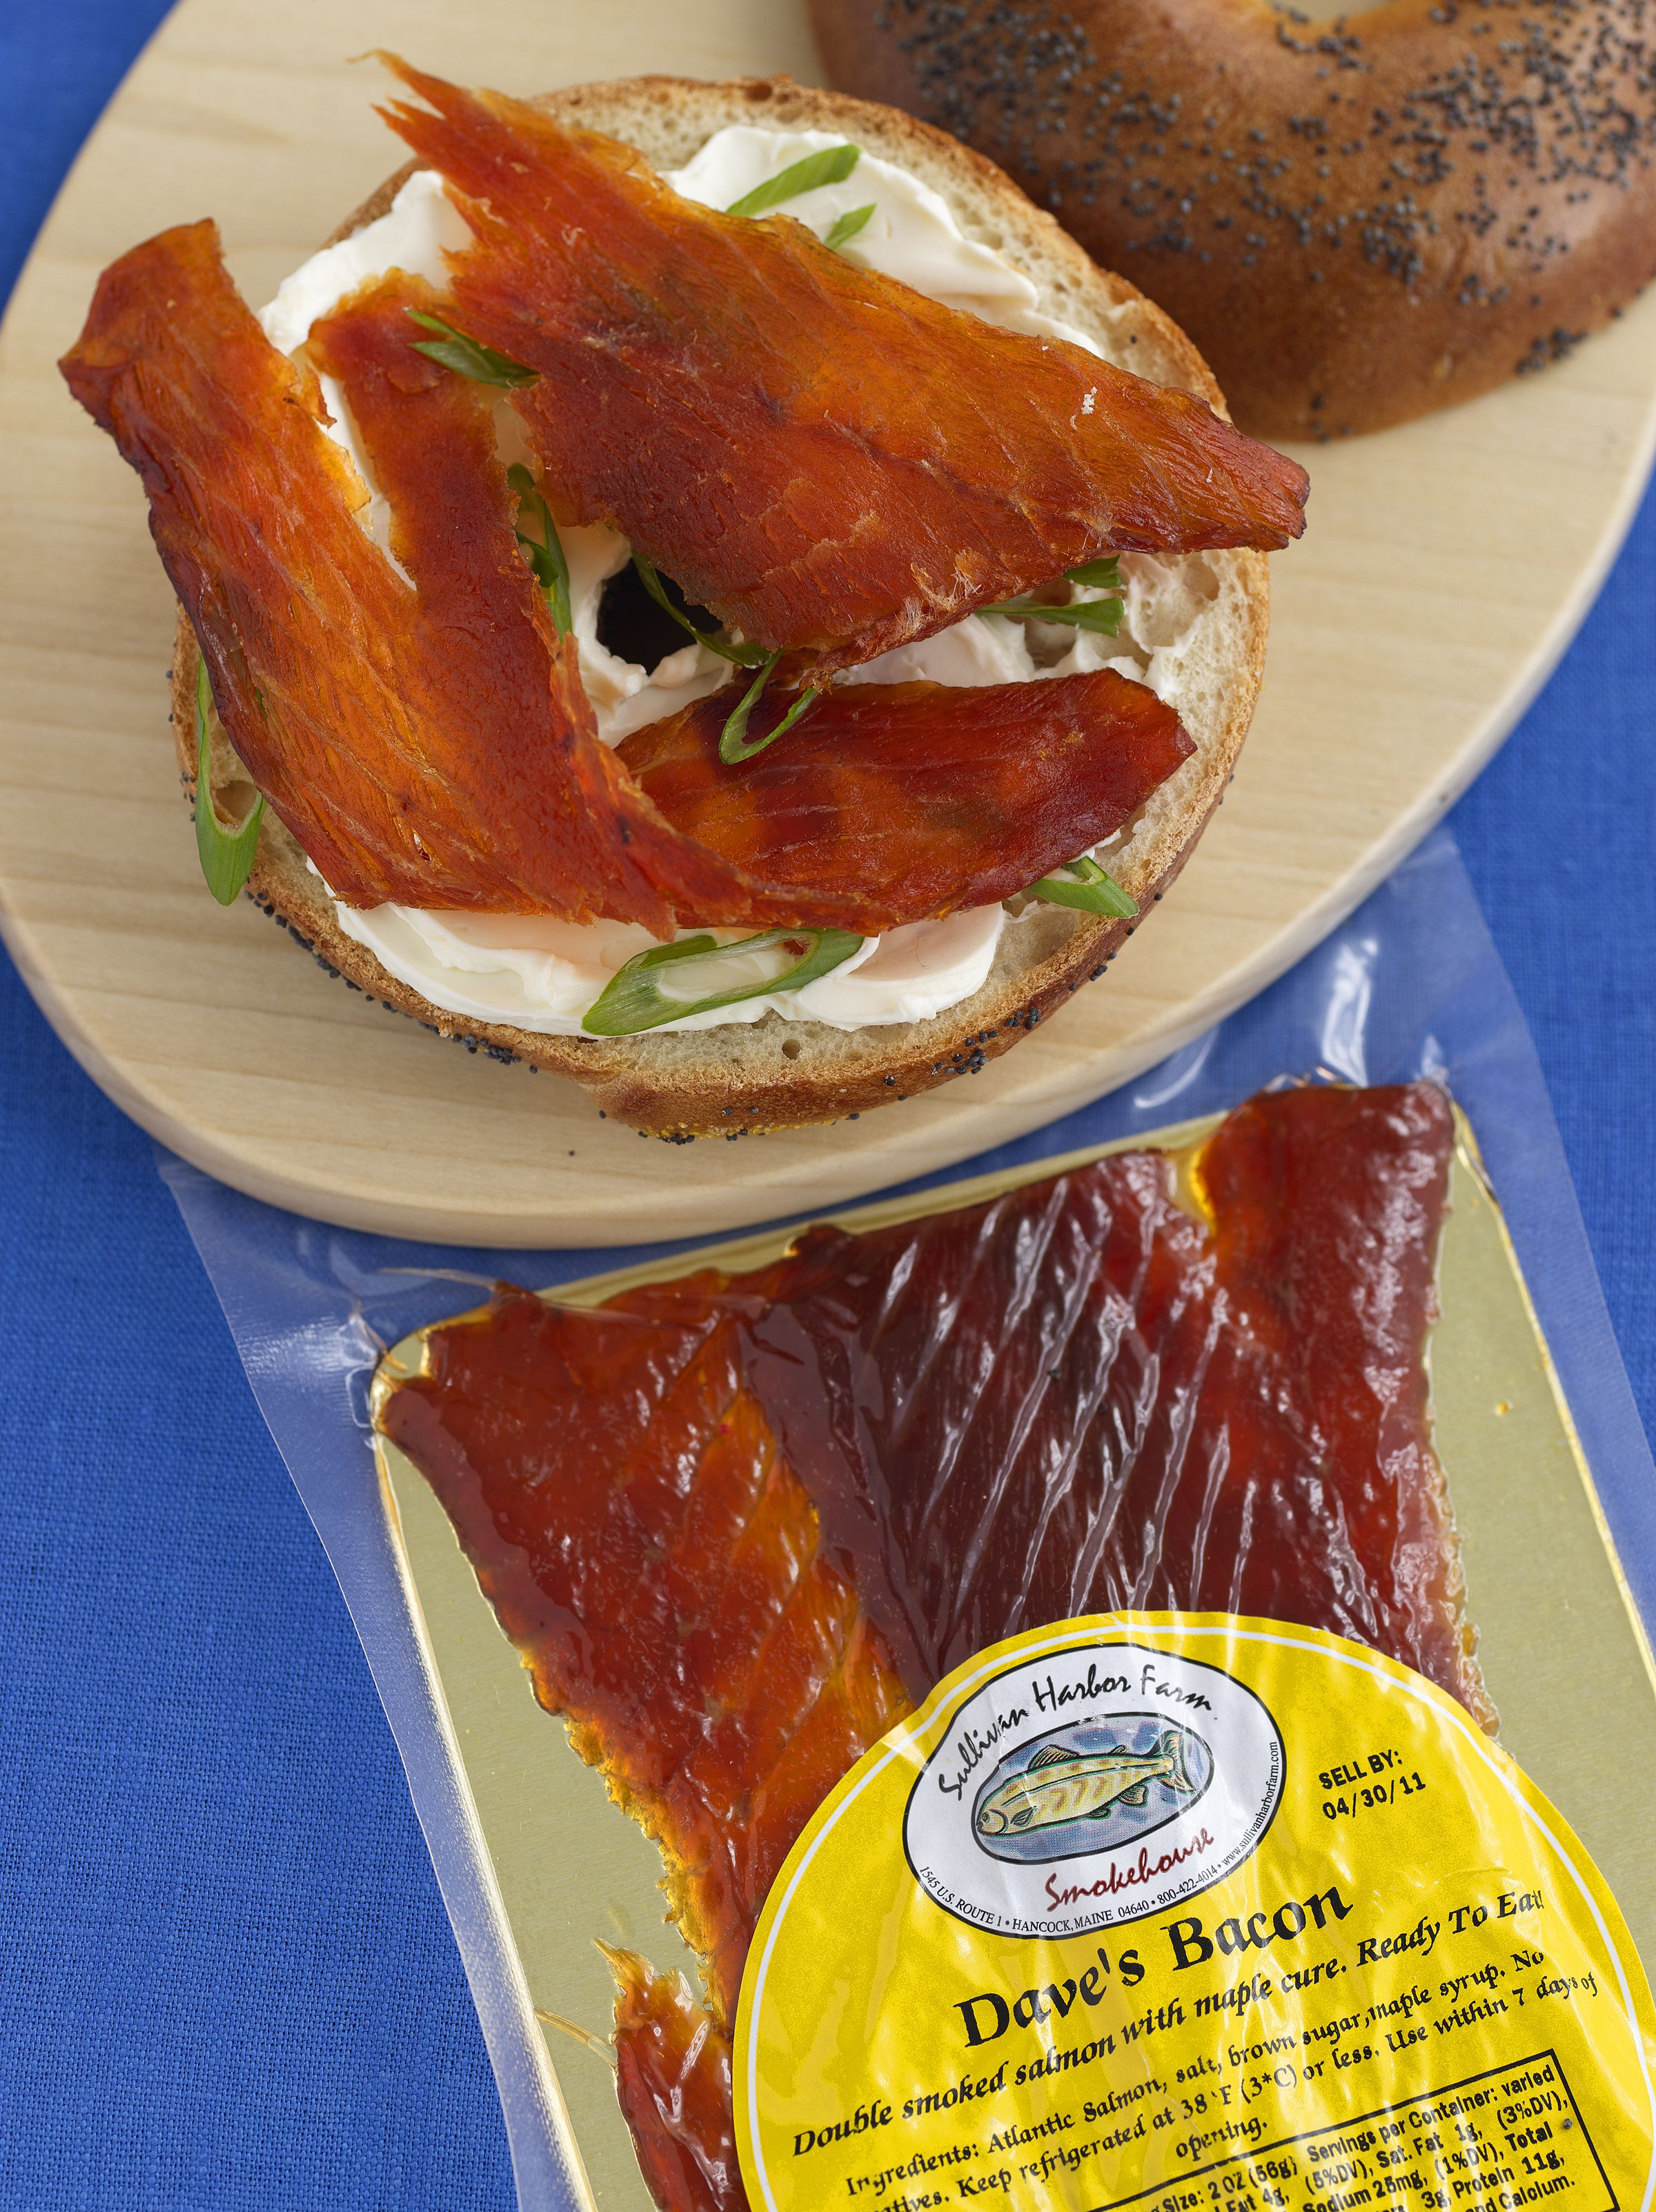 Salmon bacon adds sizzle to breakfast - The Boston Globe